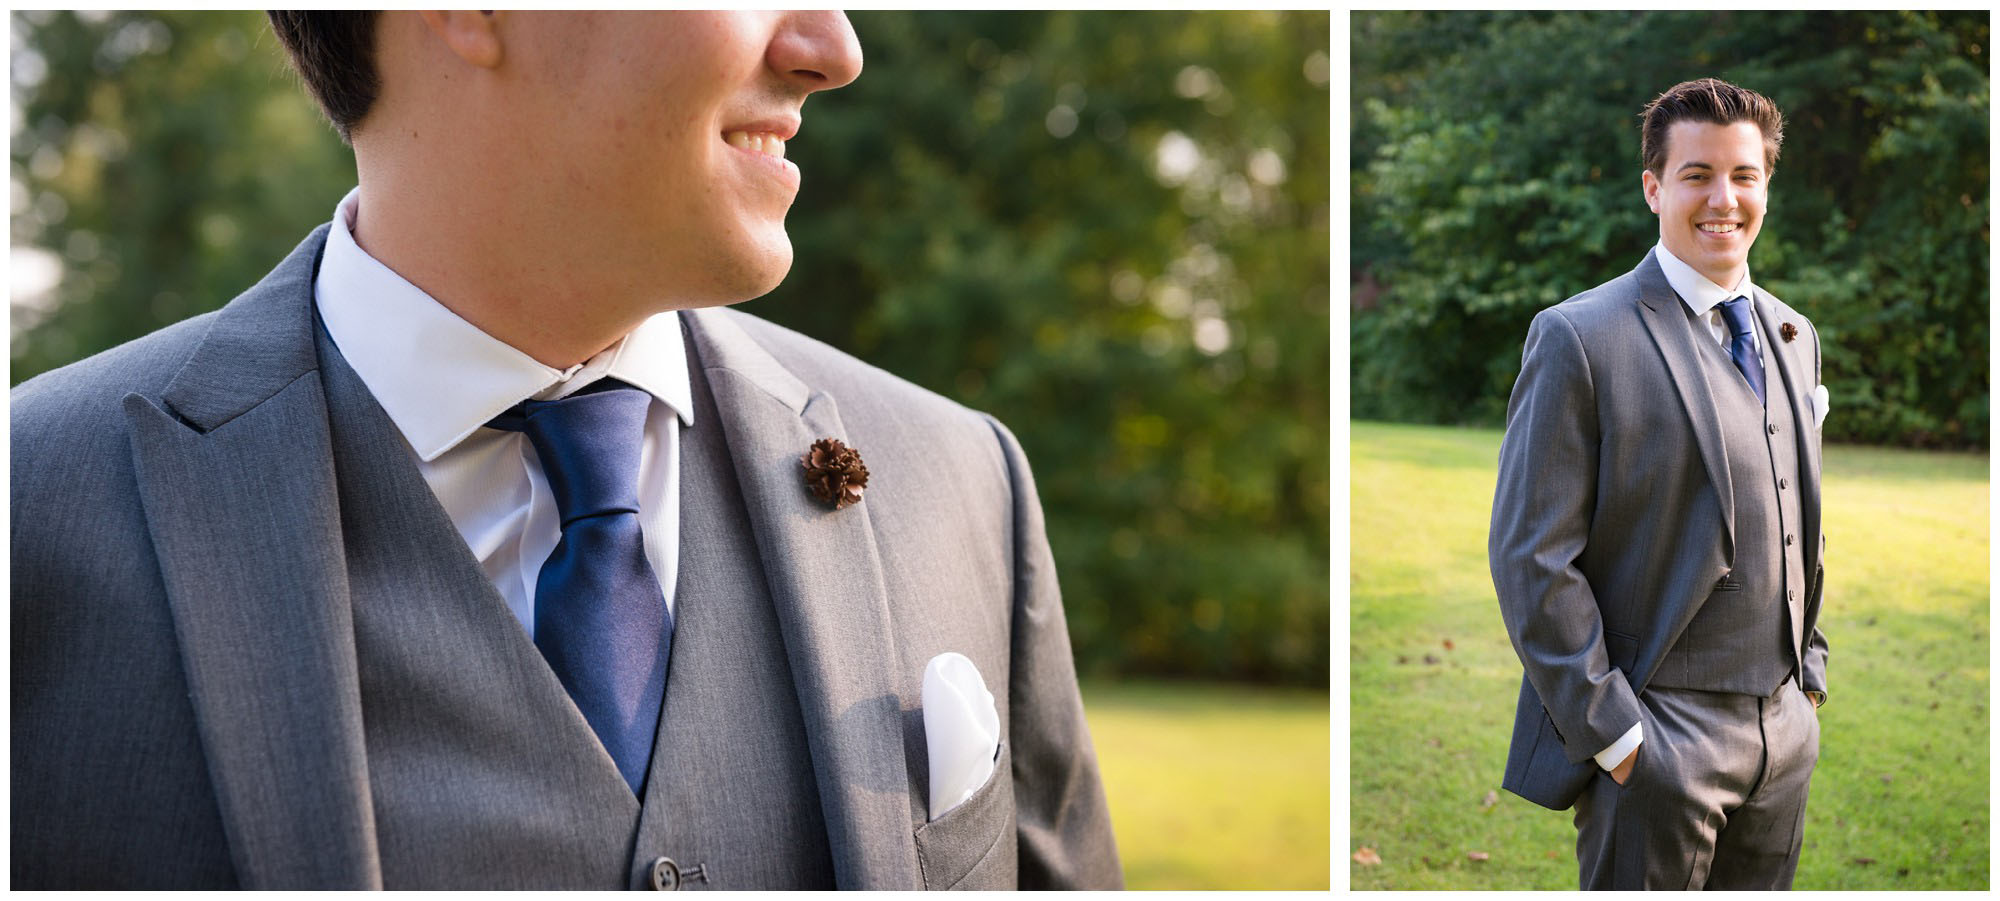 portraits of groom in grey suit on wedding day